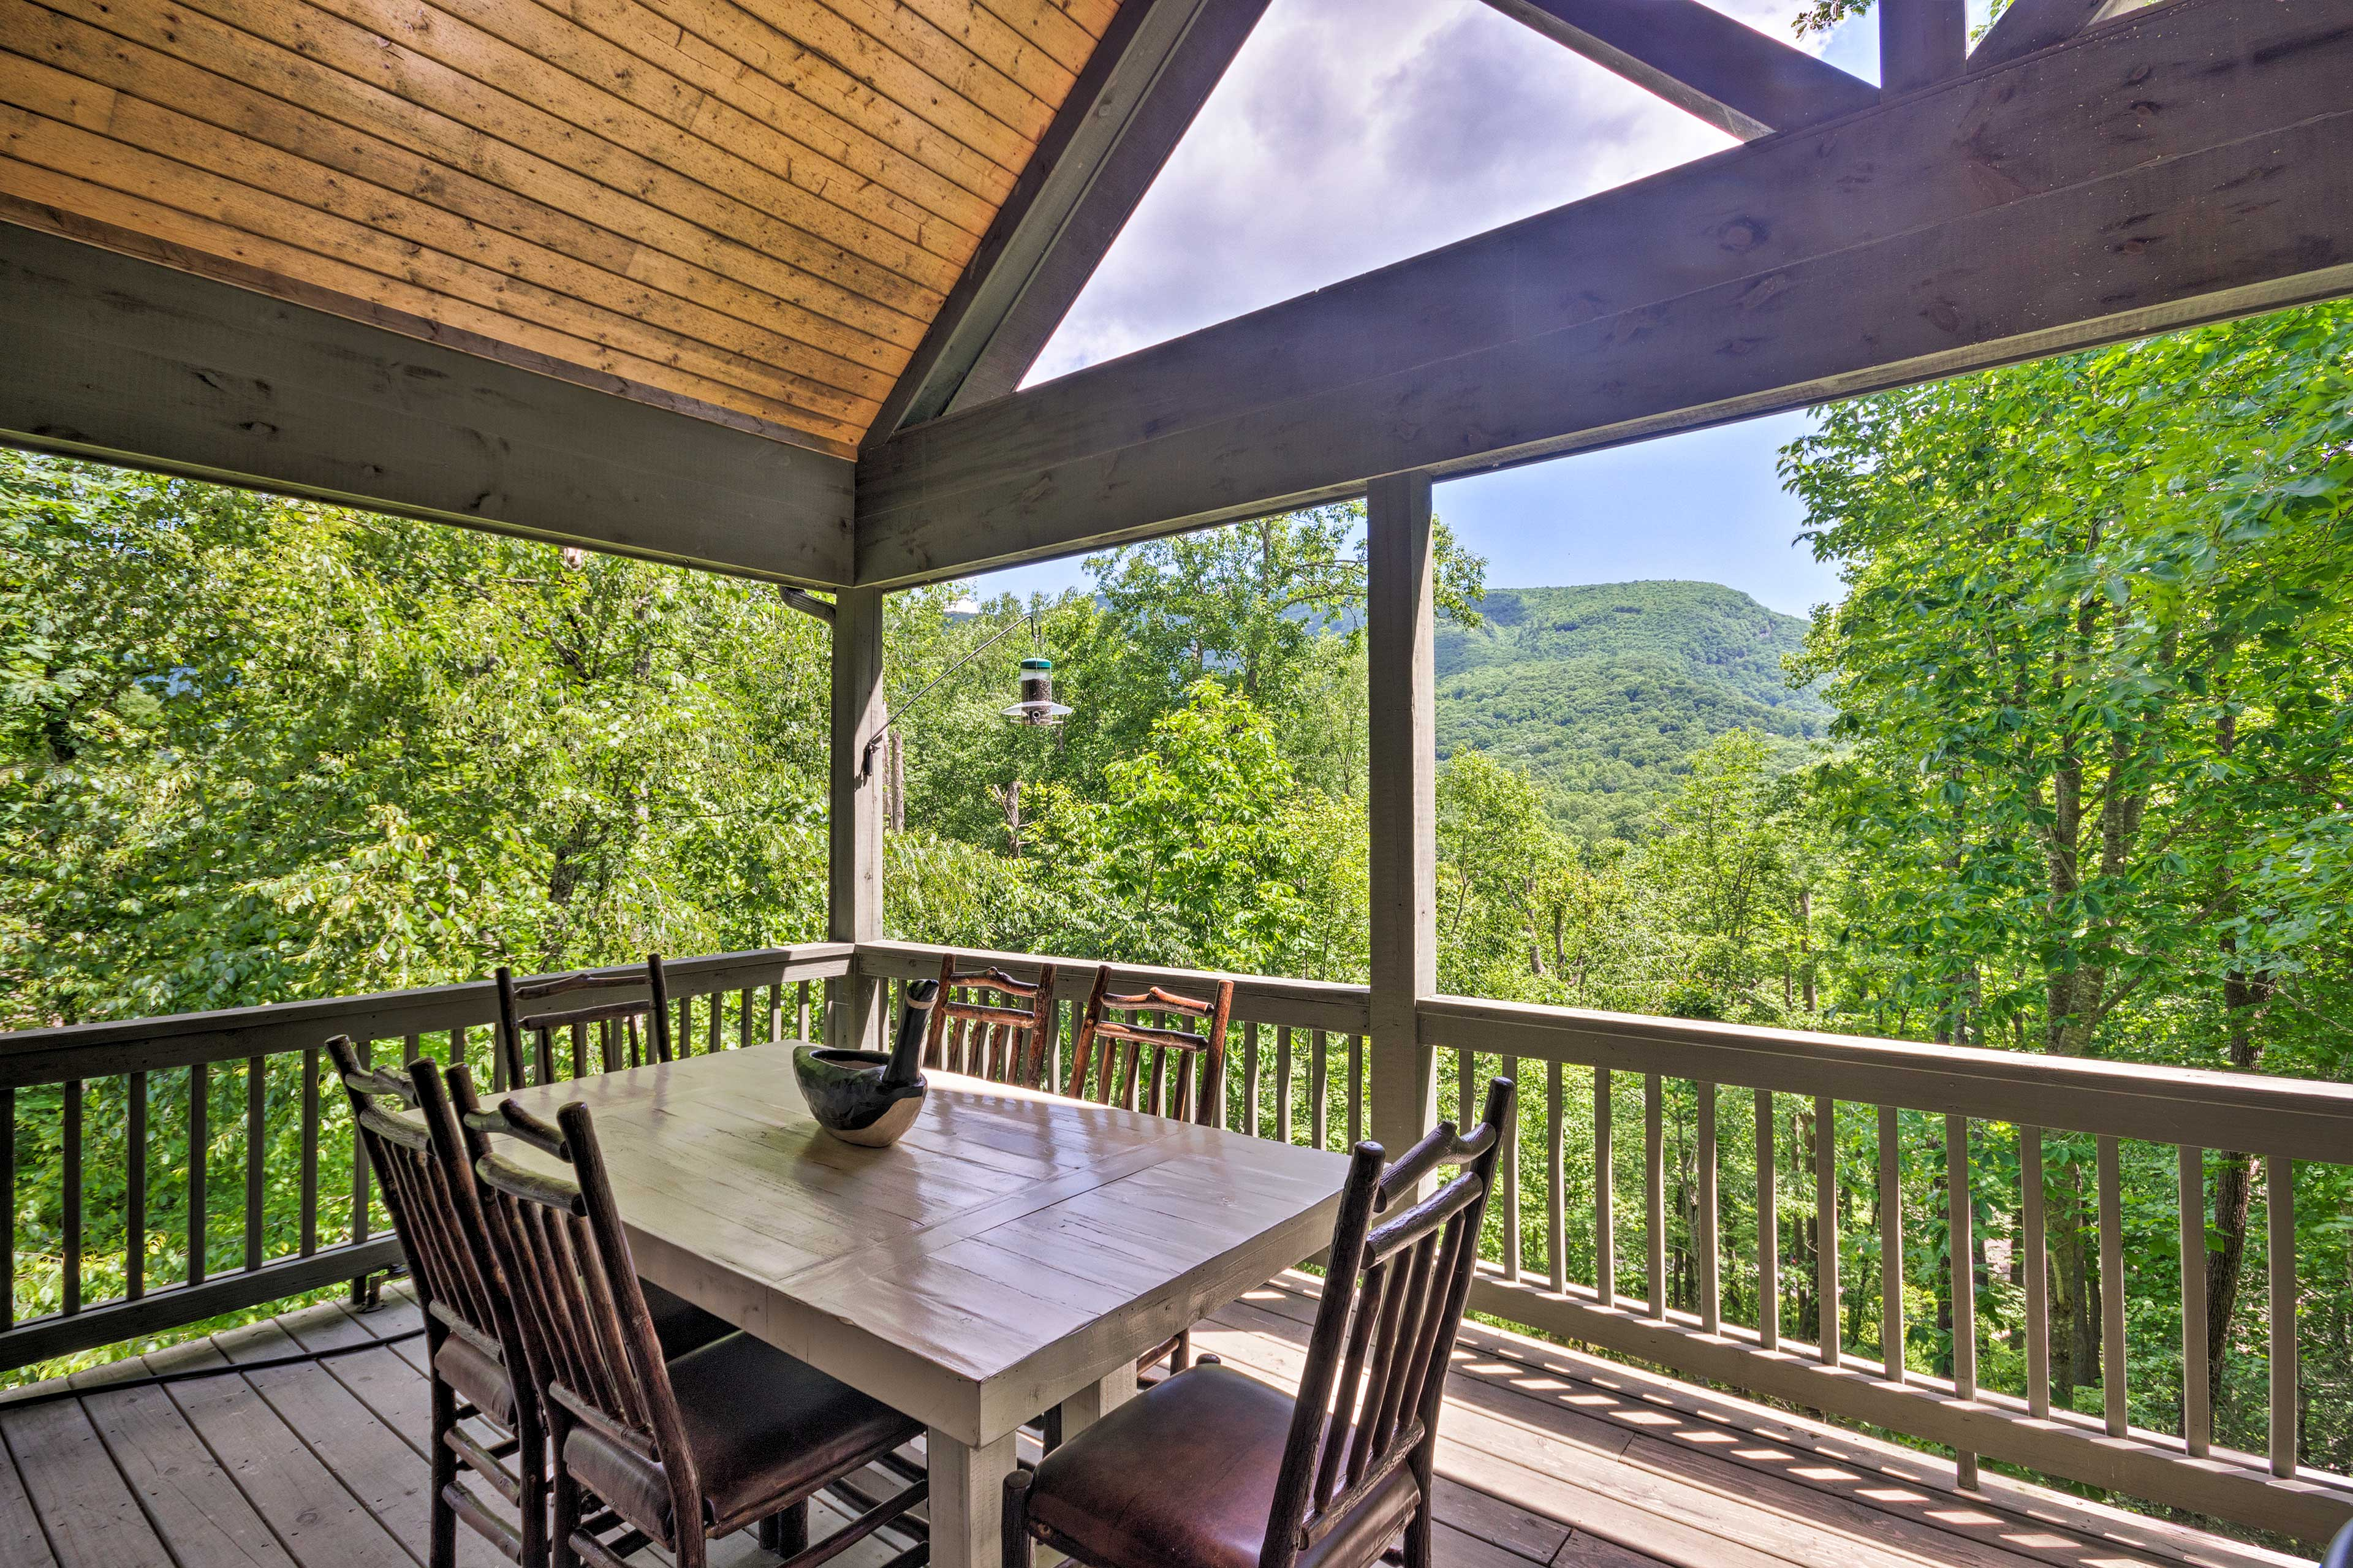 This vacation rental home features beautiful mountain views from its deck!